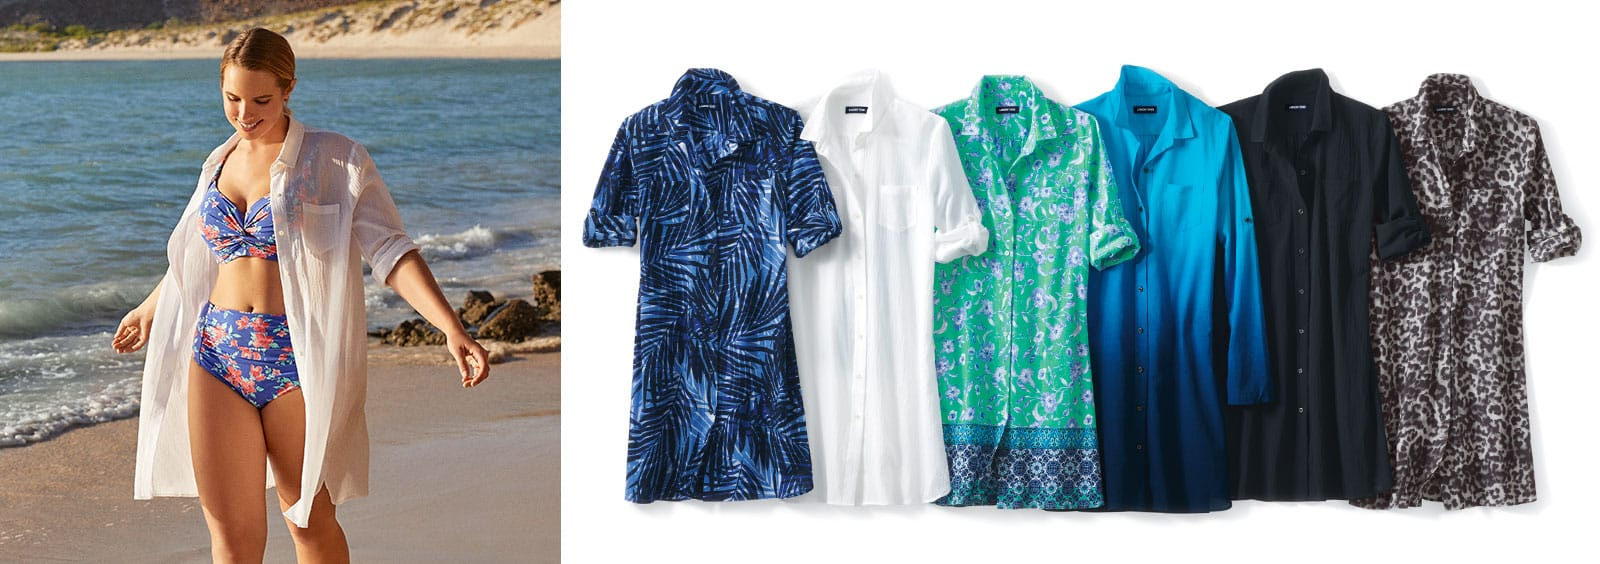 Best Coverups for Your Next Beach Day